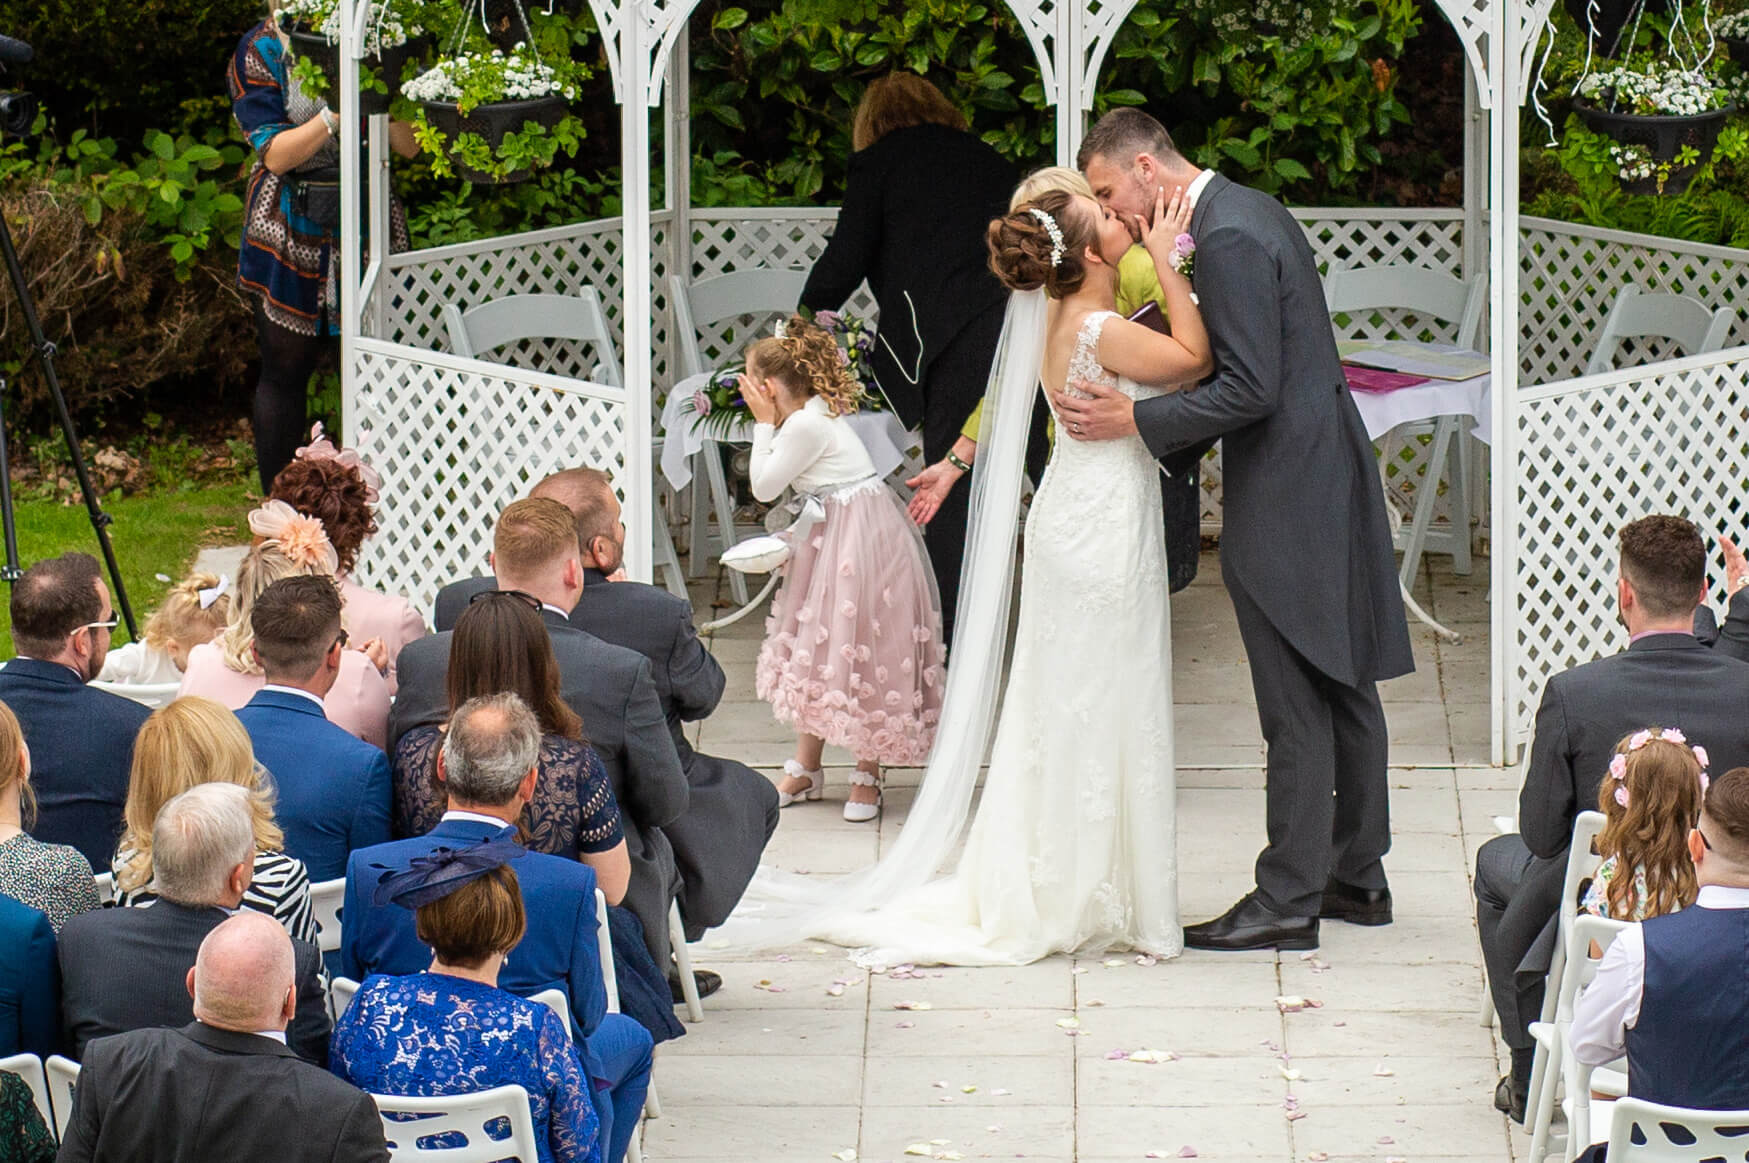 A cold reacts as her parents kiss following their wedding